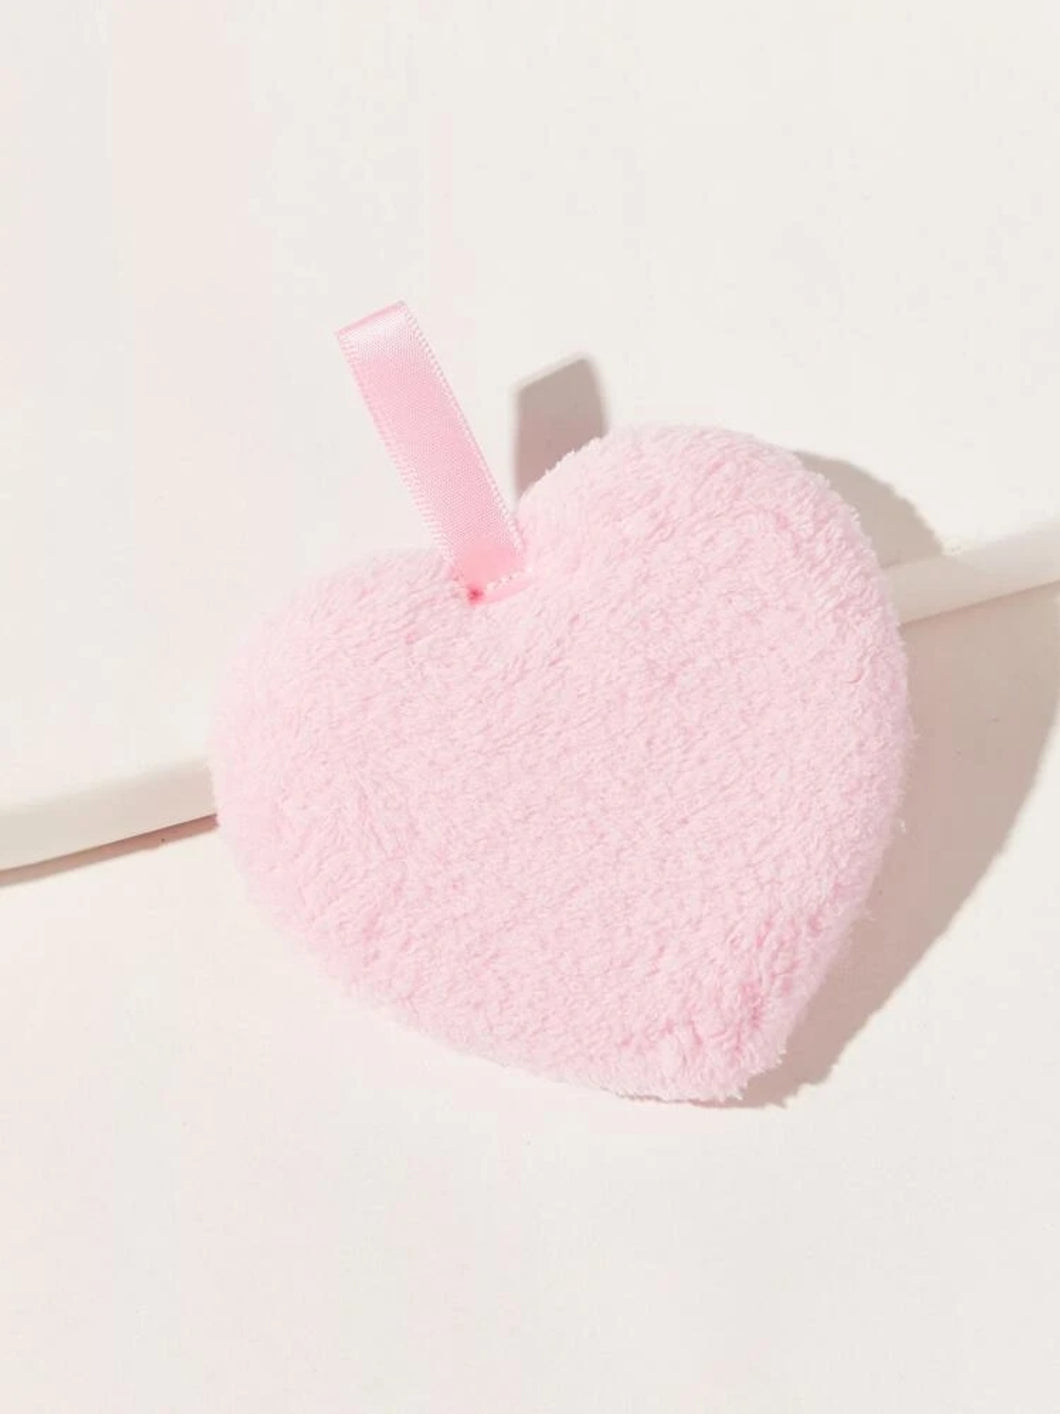 Heart shape puff